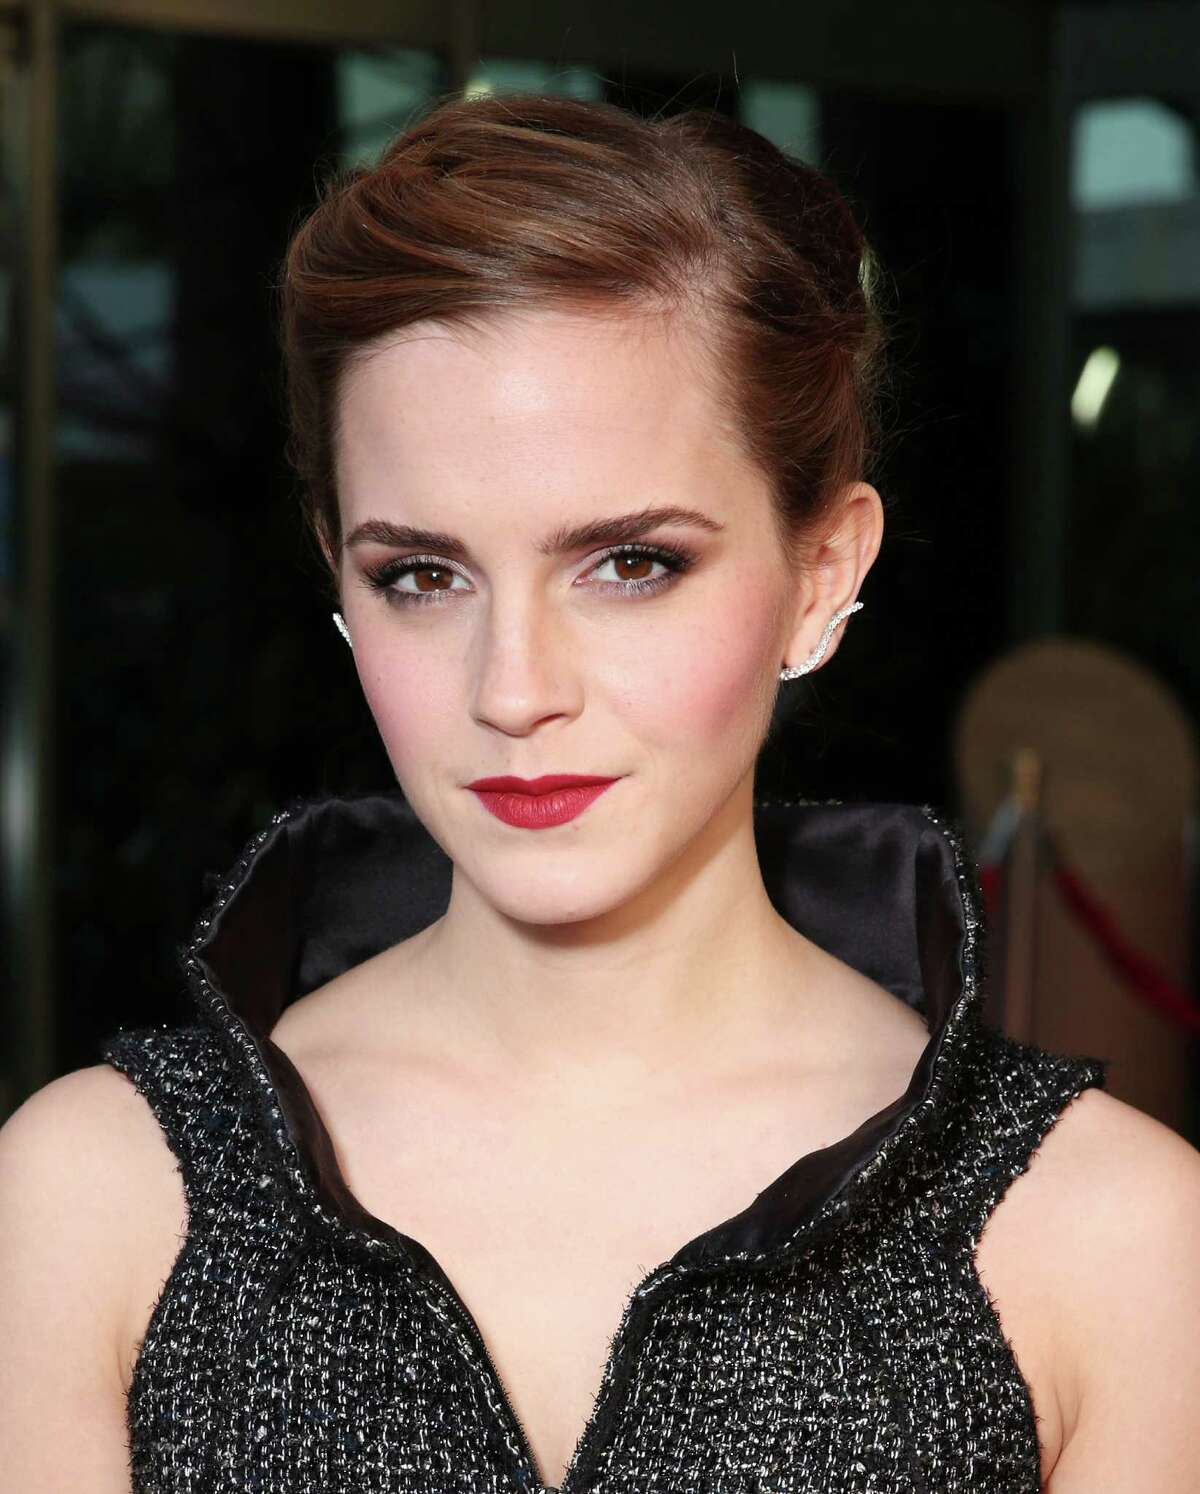 """Emma Watson attends the LA premiere of """"The Bling Ring"""" at the Director's Guild of America on Tuesday, June 4, 2013 in Los Angeles. (Photo by Todd Williamson/Invision/AP)"""